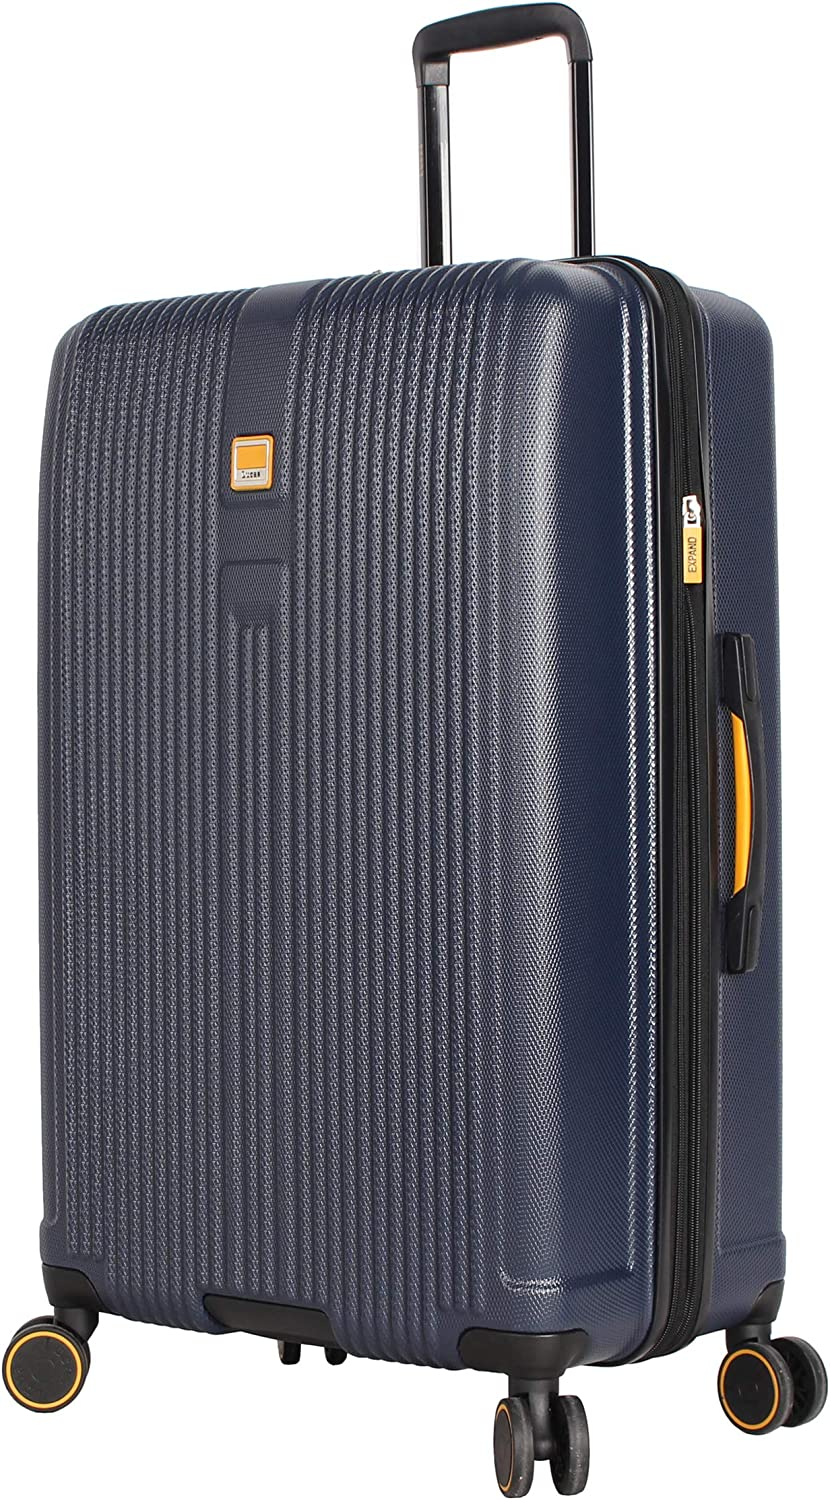 Expandable Scratch Resistant Aster Blue Lucas 3 Piece Luggage Set 27 Inch and 31 Inch Checked Bags With 8-Rolling Spinner Wheels ABS + PC Hard Case Suitcases Set Includes 20 Inch Carry on